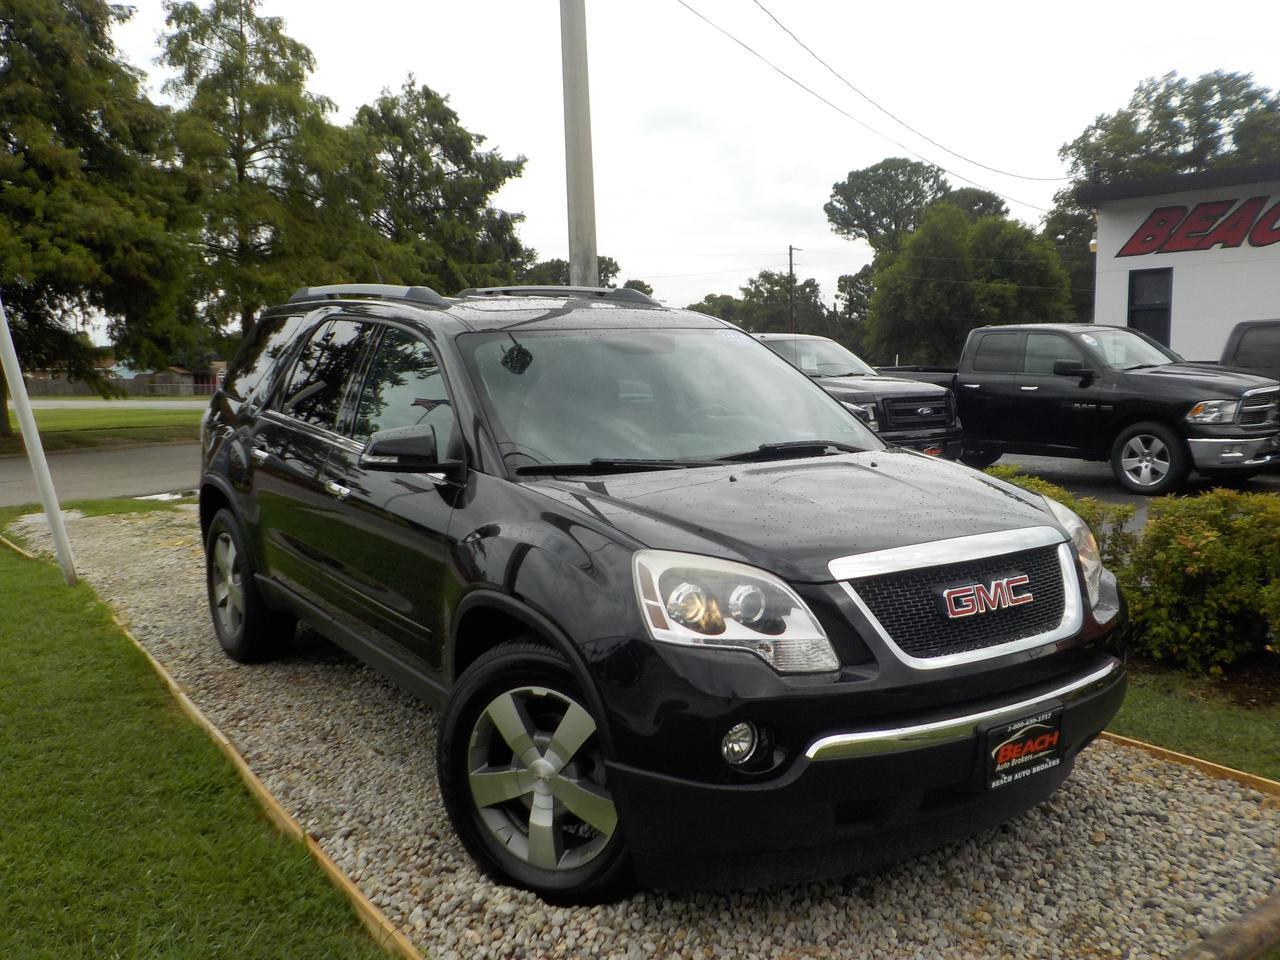 2012 GMC ACADIA SLT, WARRANTY, LEATHER, 3RD ROW, NAV, BACKUP CAM, PARKING SENSORS, BOSE SOUND, SUNROOF, 1 OWNER!